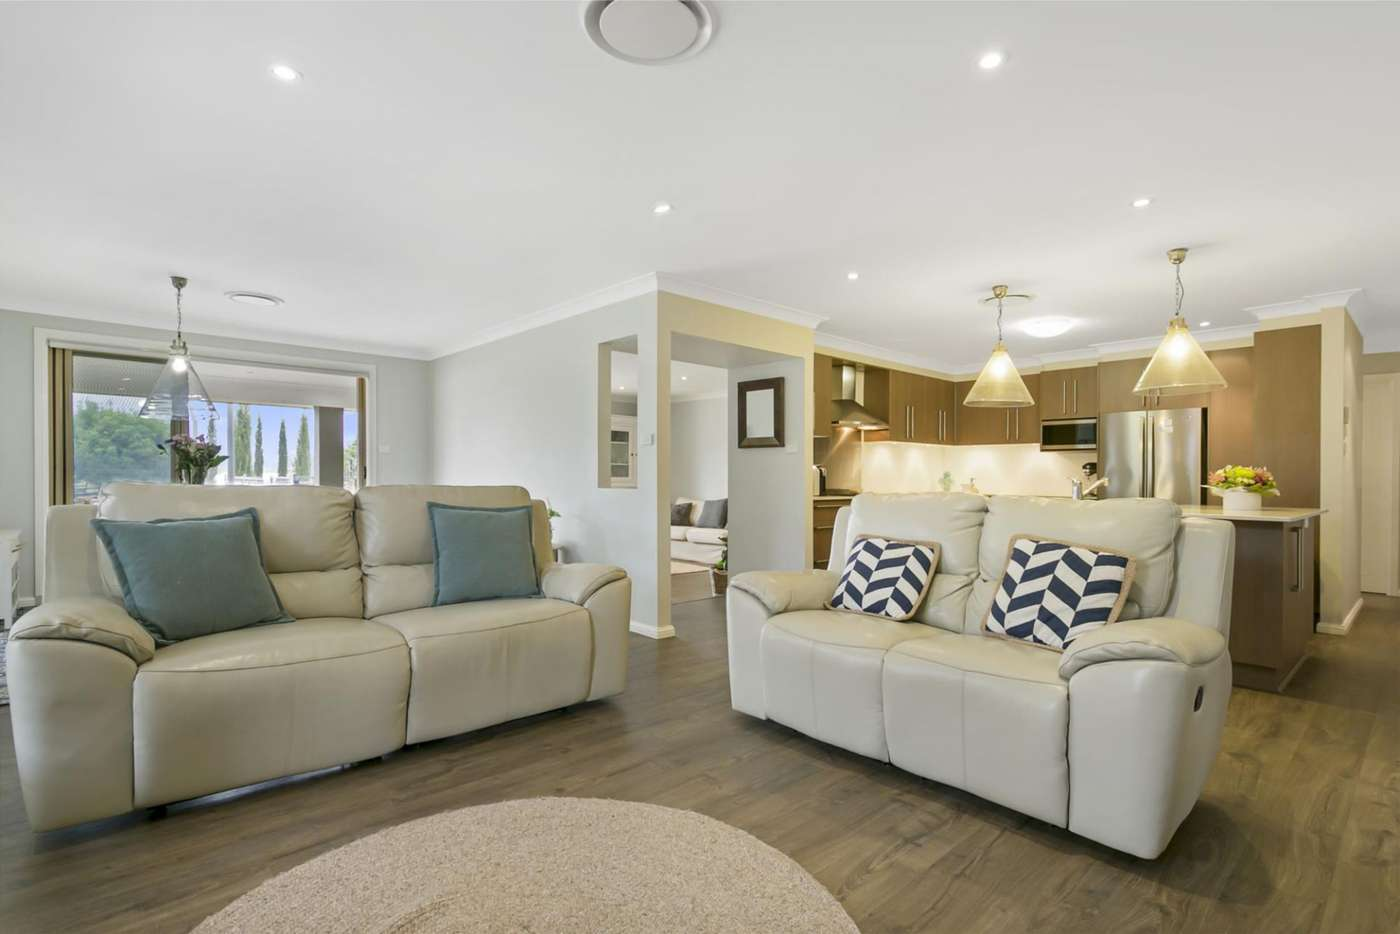 Sixth view of Homely house listing, 24 Wyndham Close, Daruka NSW 2340